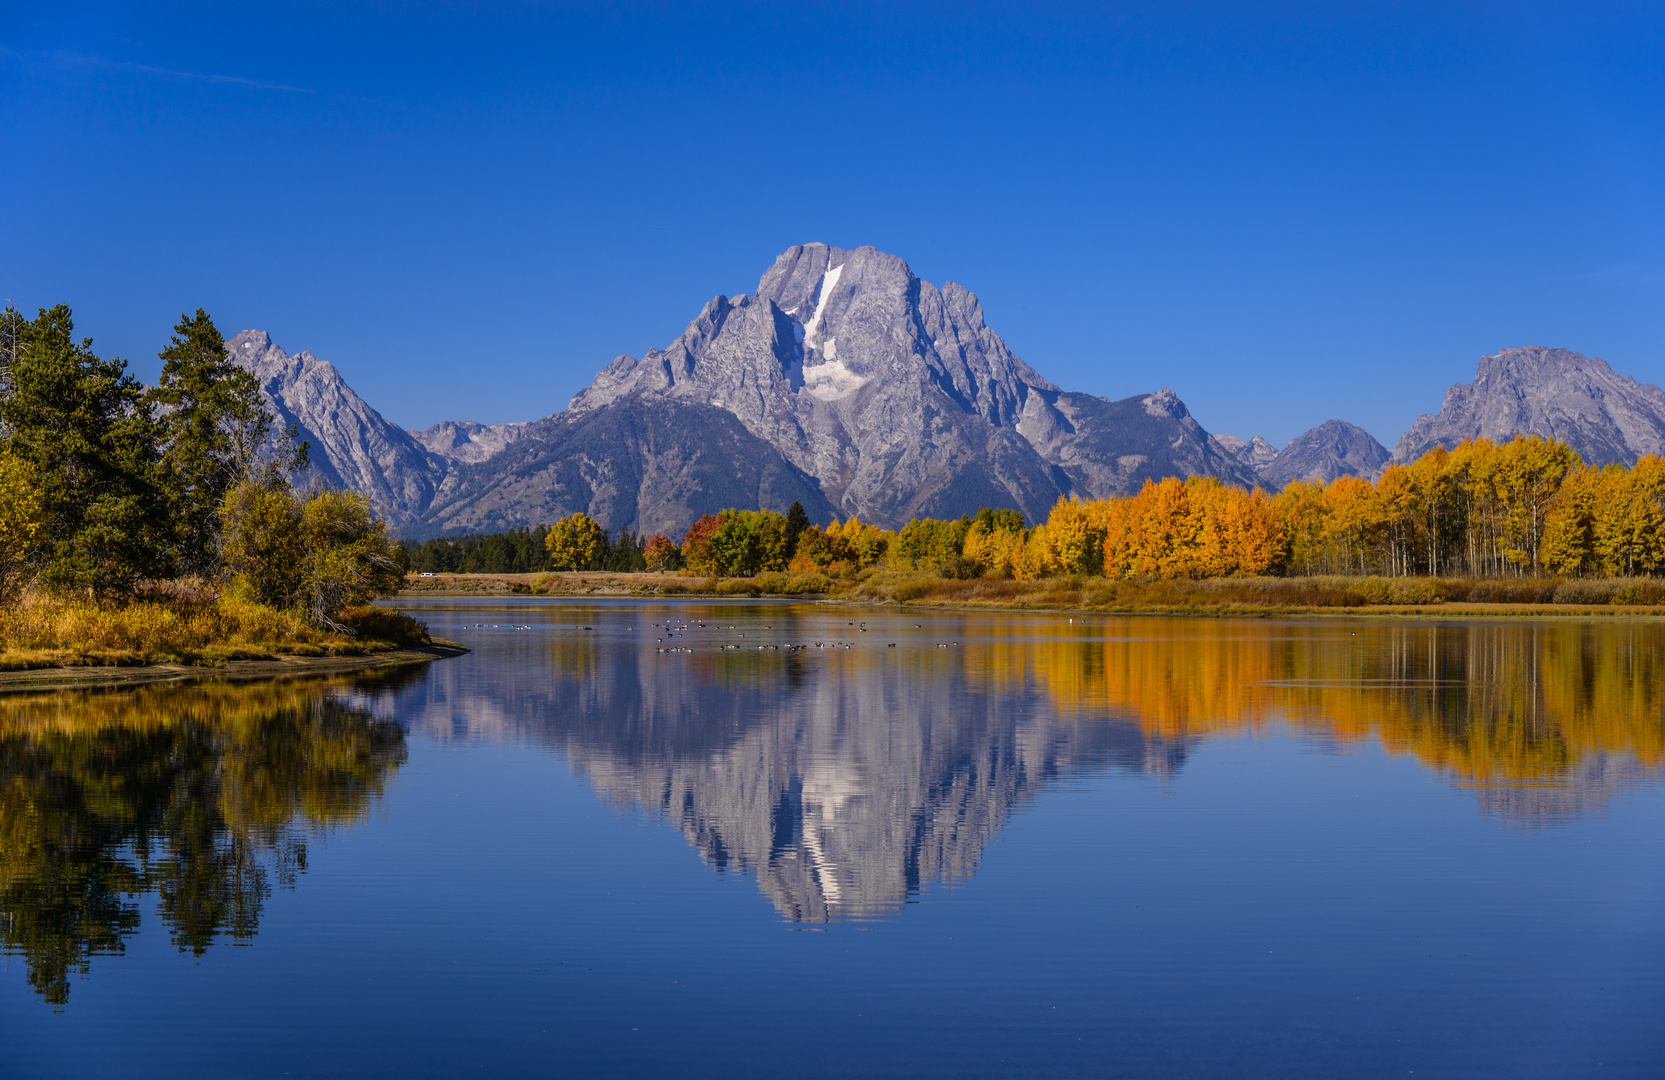 Herbst am Oxbow Bend mit Mount Moran, Wyoming, USA